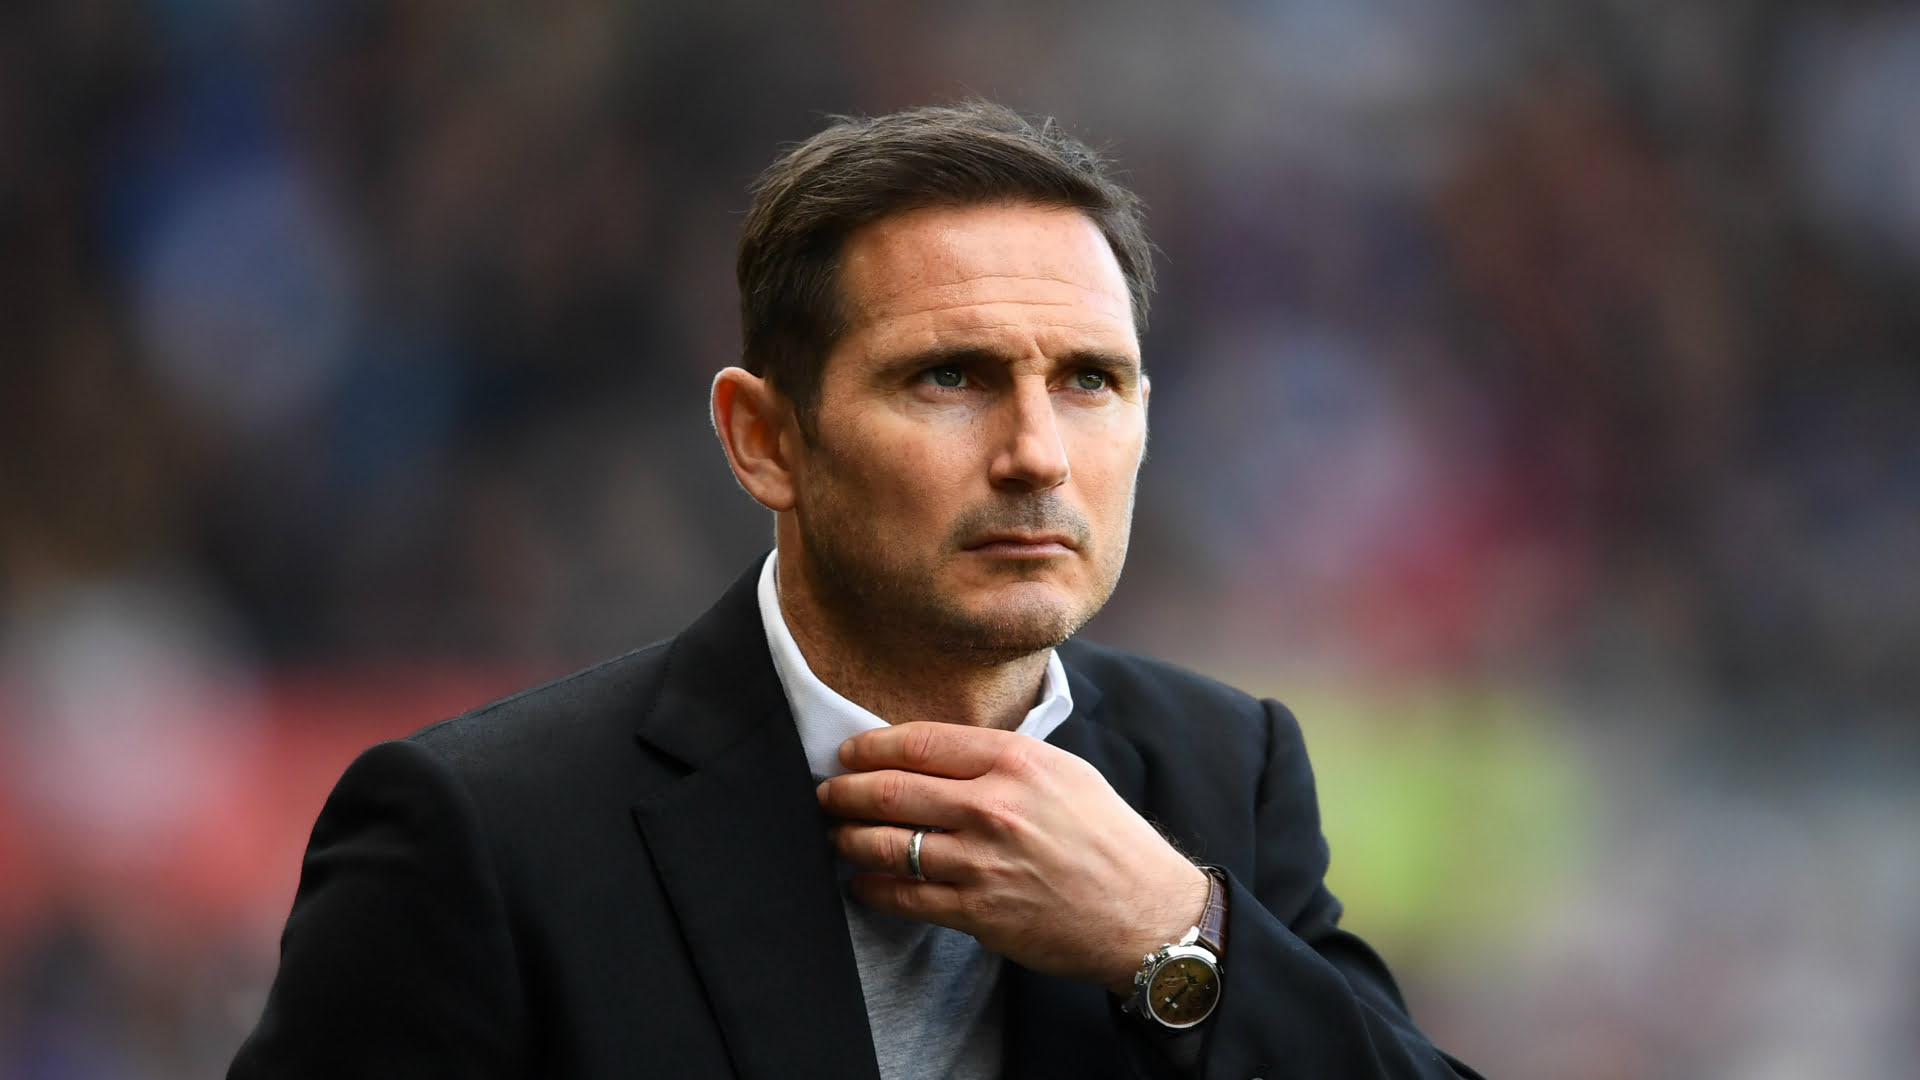 lampard - EPL: Lampard warned over Chelsea job